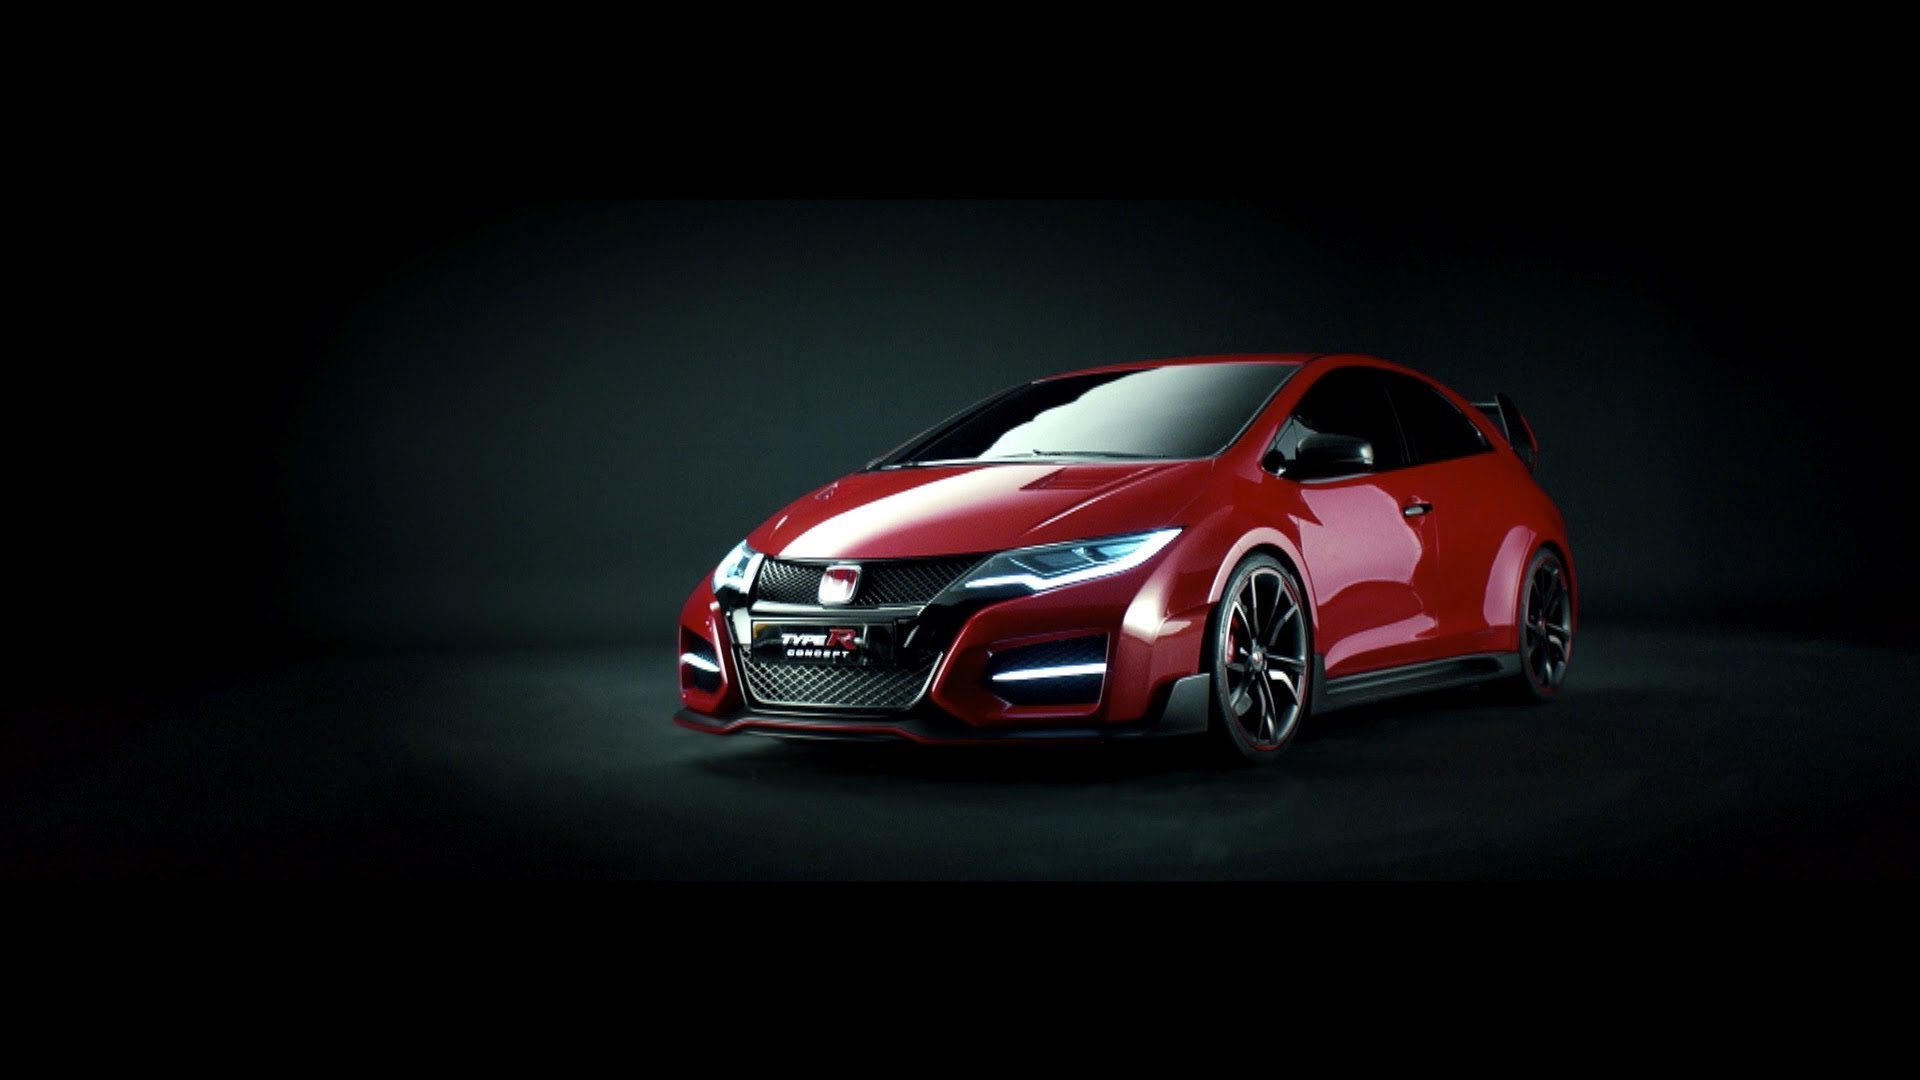 Honda civic 2015 wallpaper for pc wallpaper cars Wallpaper Better 1920x1080